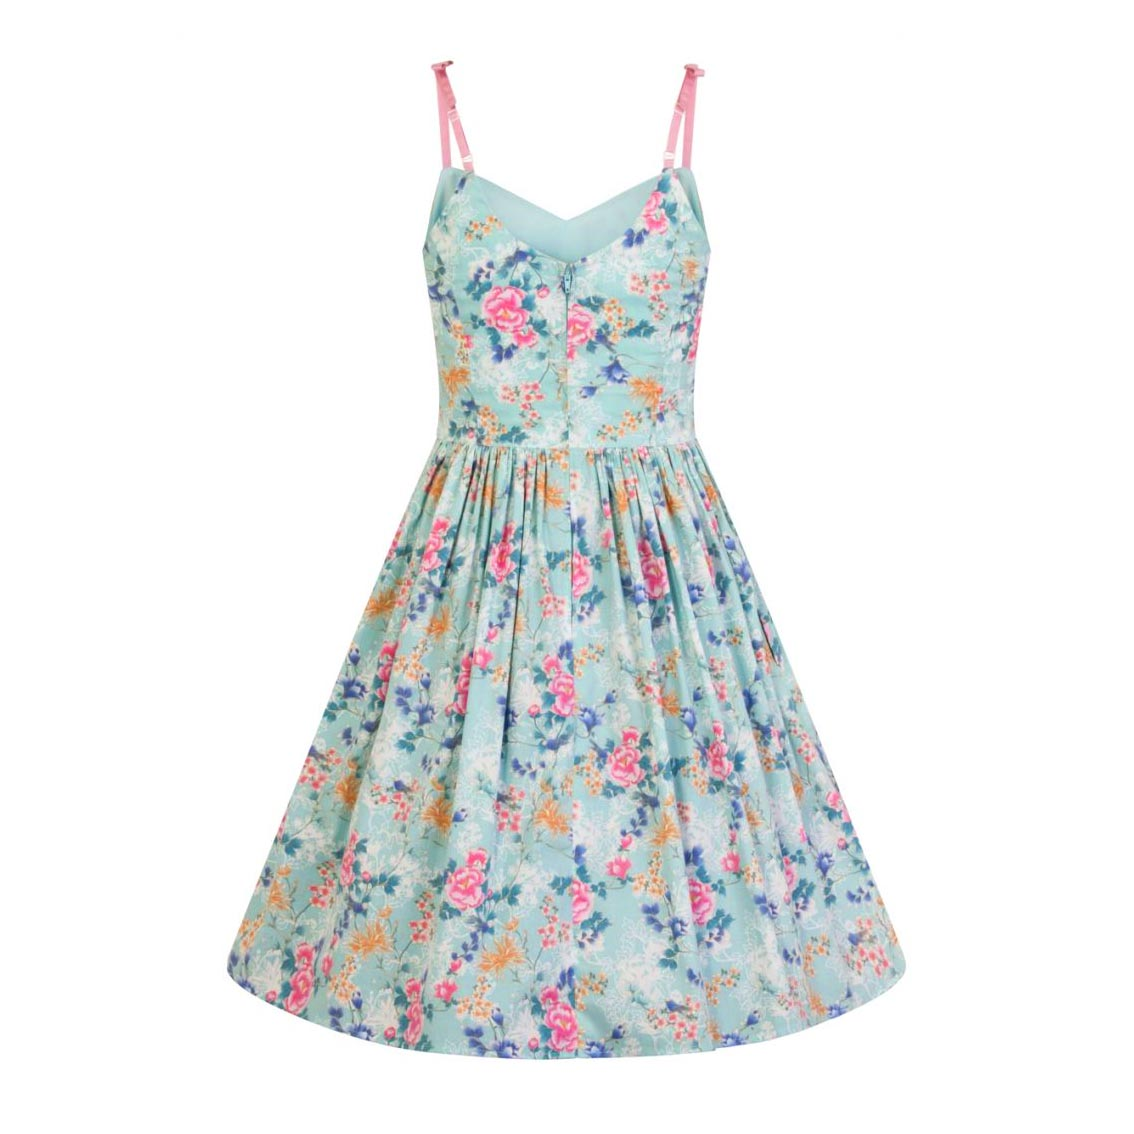 Hell-Bunny-50s-Mid-Length-Dress-Vintage-Blue-Pink-SAKURA-Flowers-Roses-All-Sizes thumbnail 30